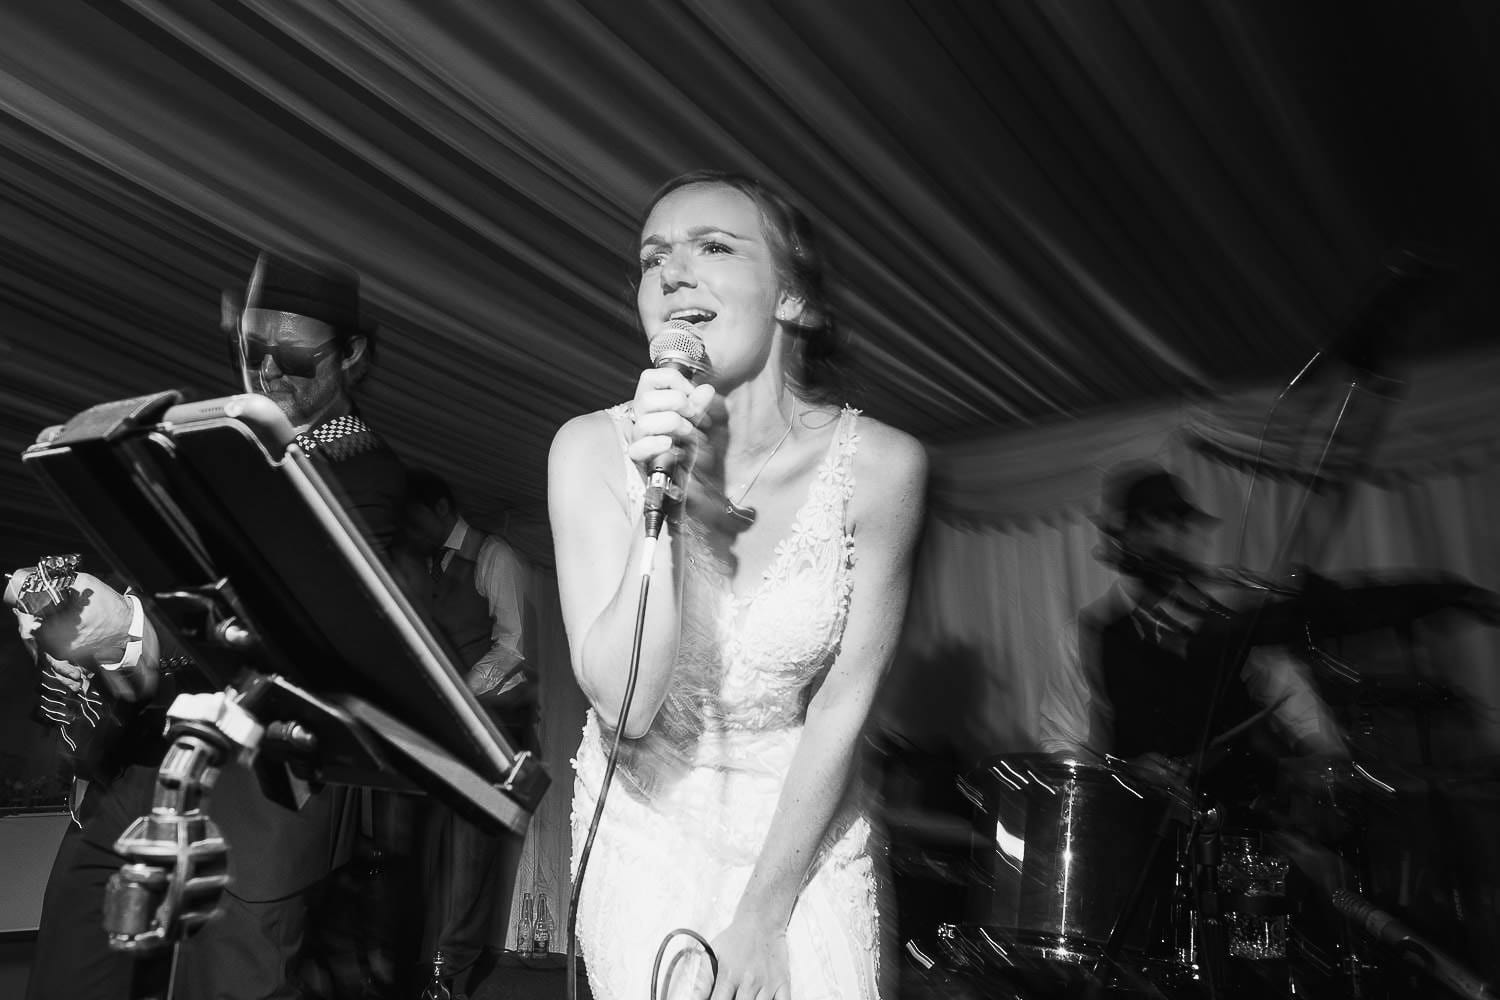 The bride sings with the band